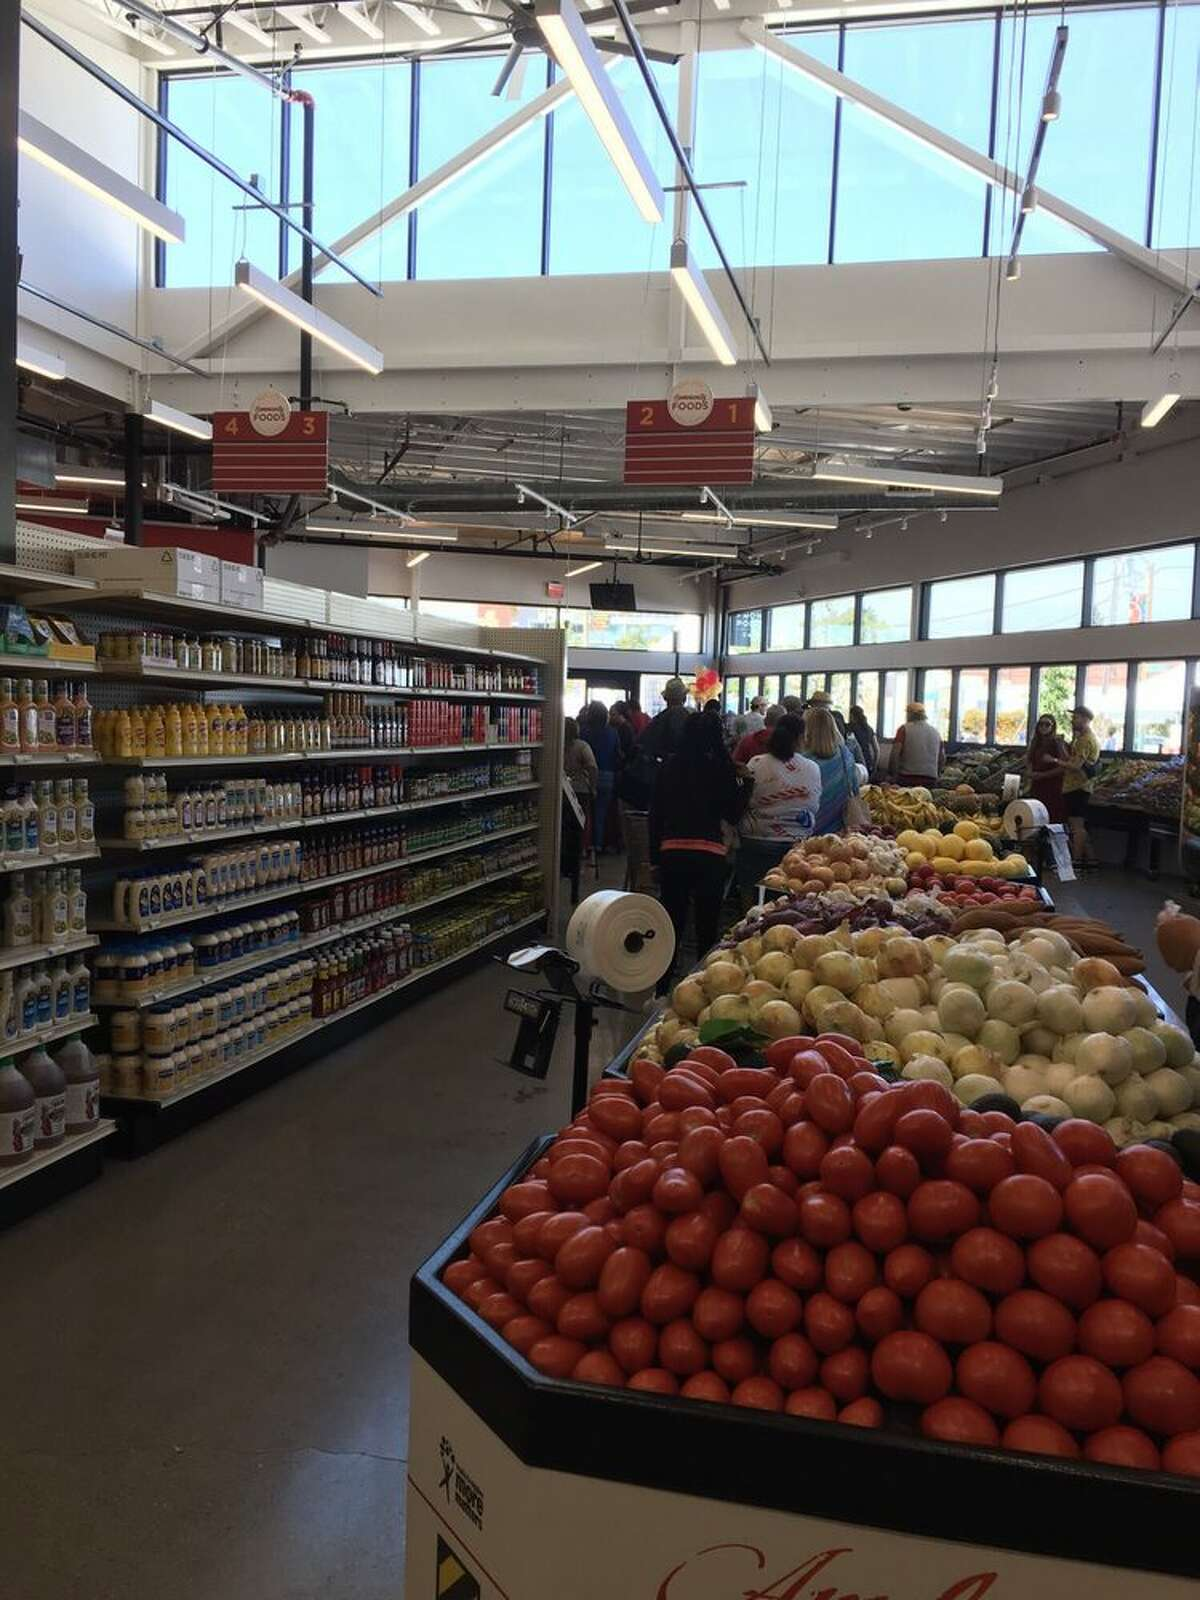 Community Foods Market, the first full-service grocery store in West Oakland in over 40 years, opened on June 1, 2019.